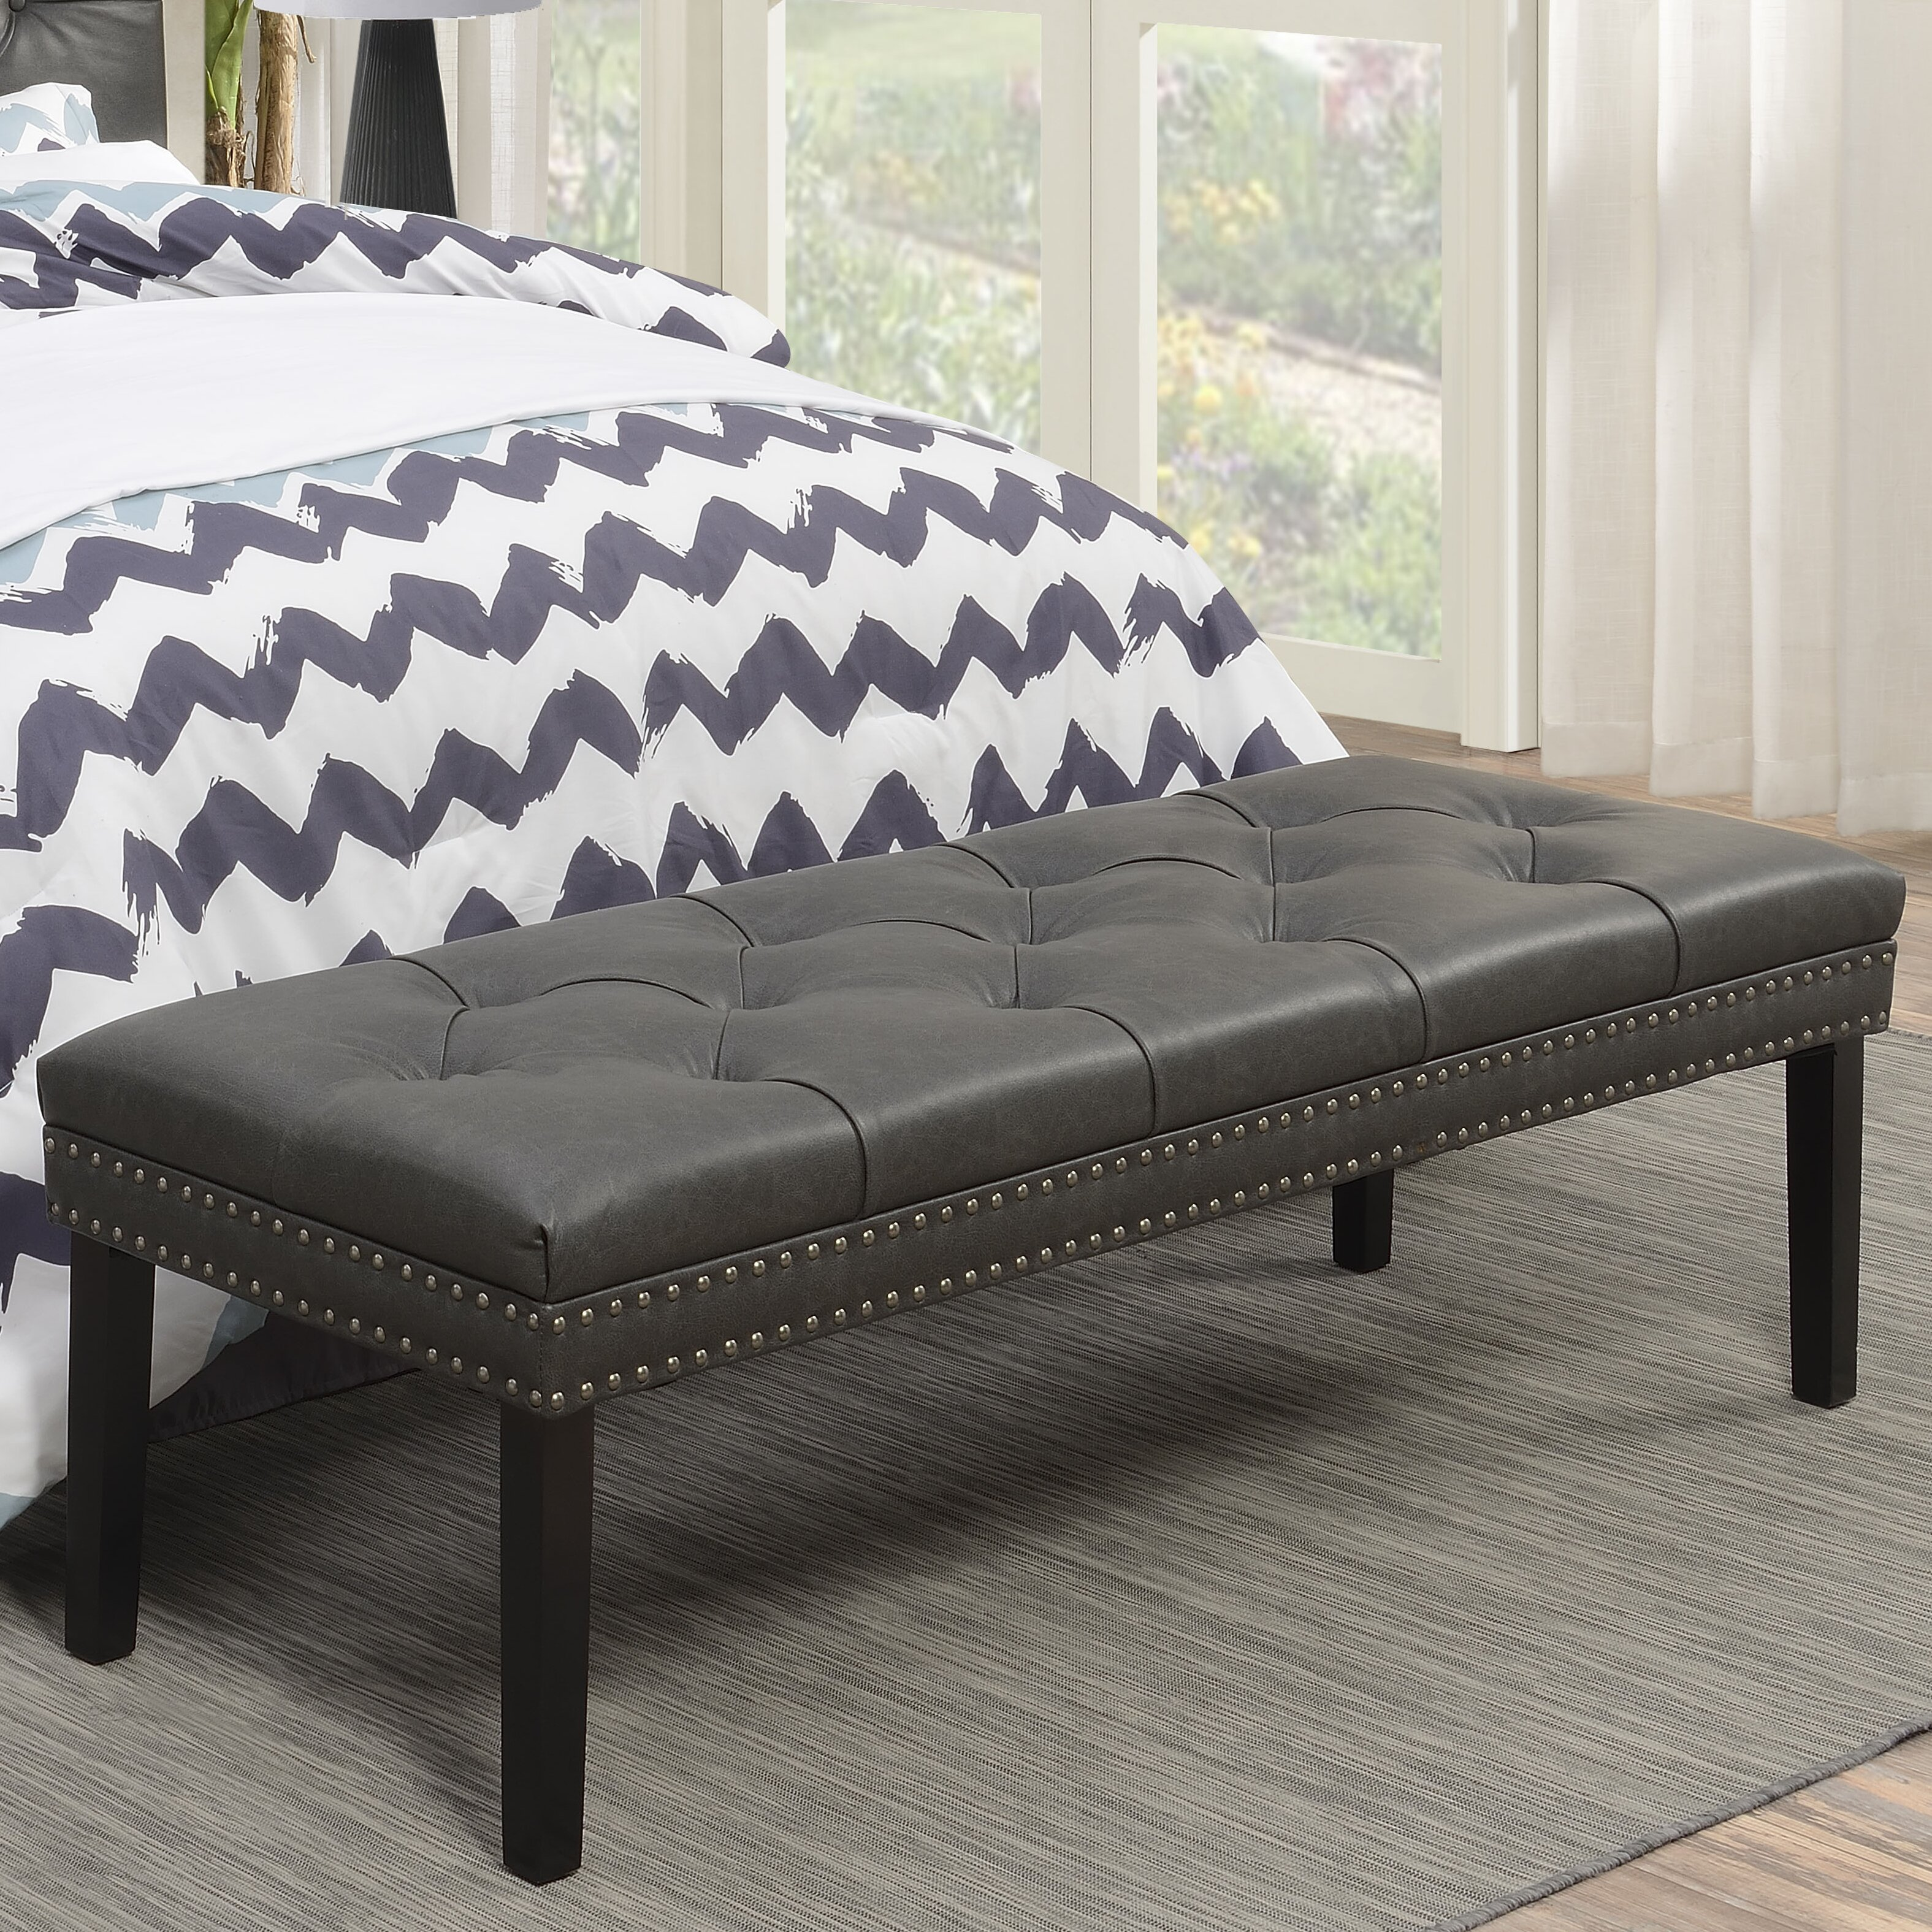 Leather Bedroom Bench Charlton Home Roxie Upholstered Leather Bedroom Bench Reviews